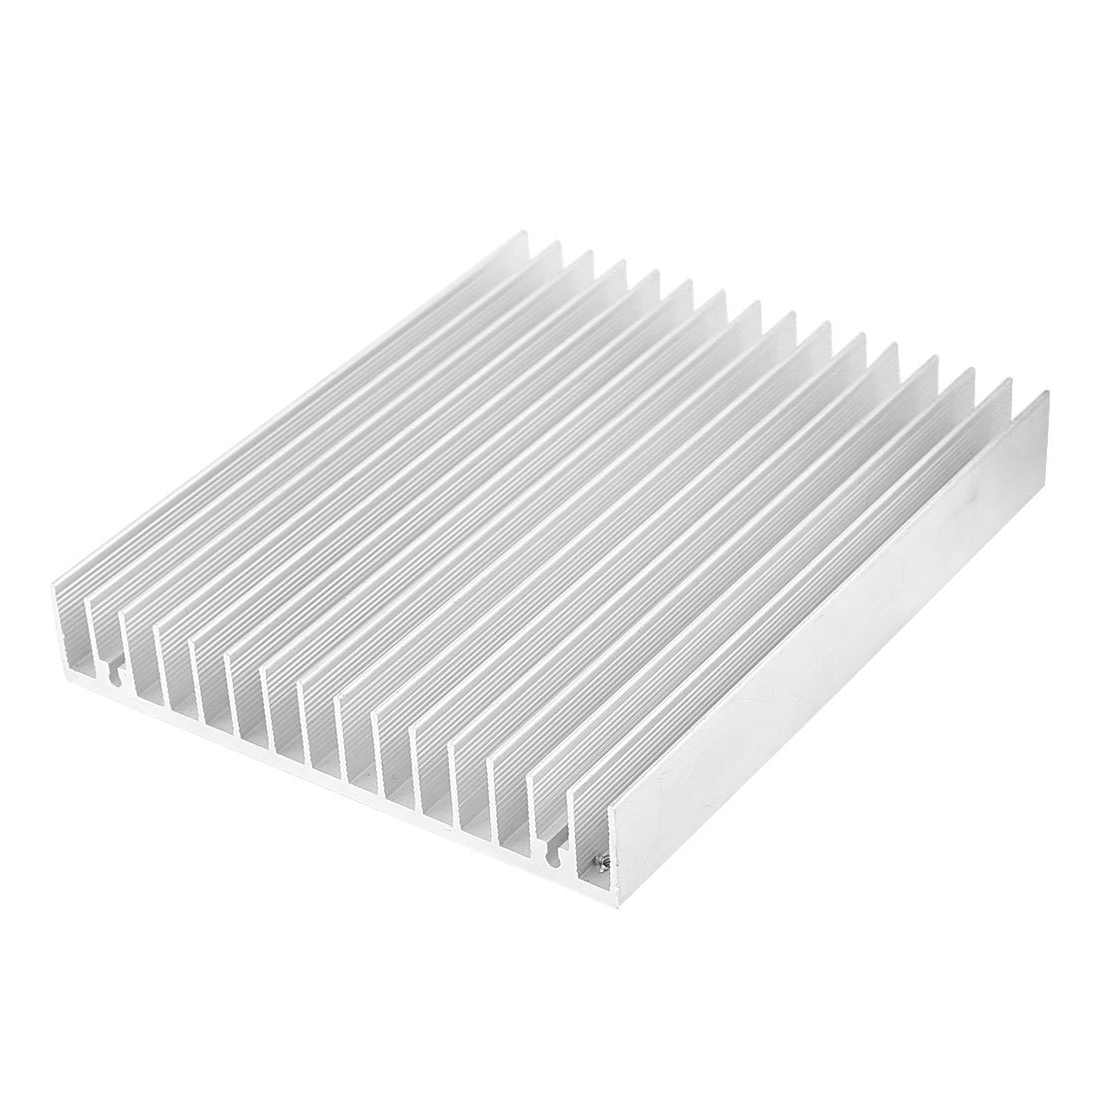 Durable Silver Tone Aluminium Heat Diffuse Heat Sink Cooling Fin 120x100x18mm 75 29 3 15 2mm pure copper radiator copper cooling fins copper fin can be diy longer heat sink radiactor fin coliing fin